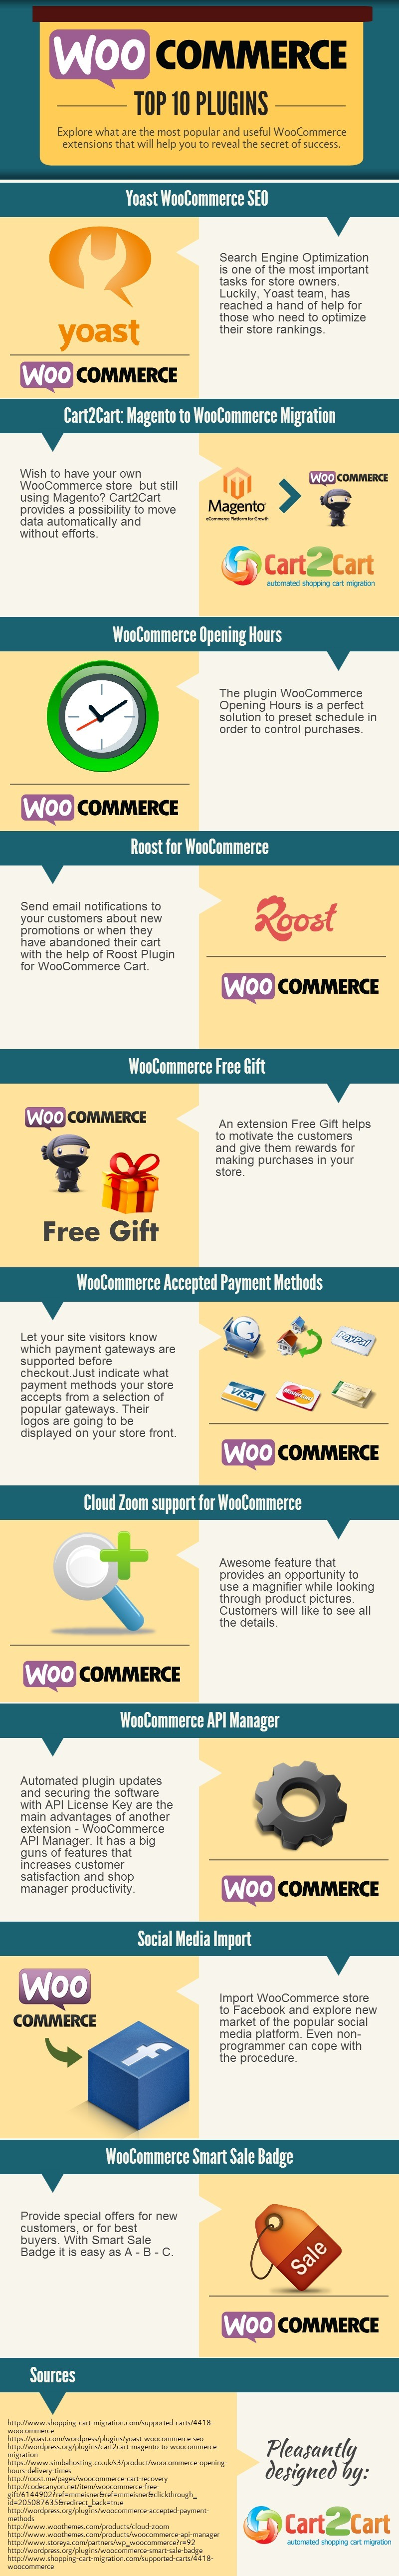 woocommerce-top-10-plugins